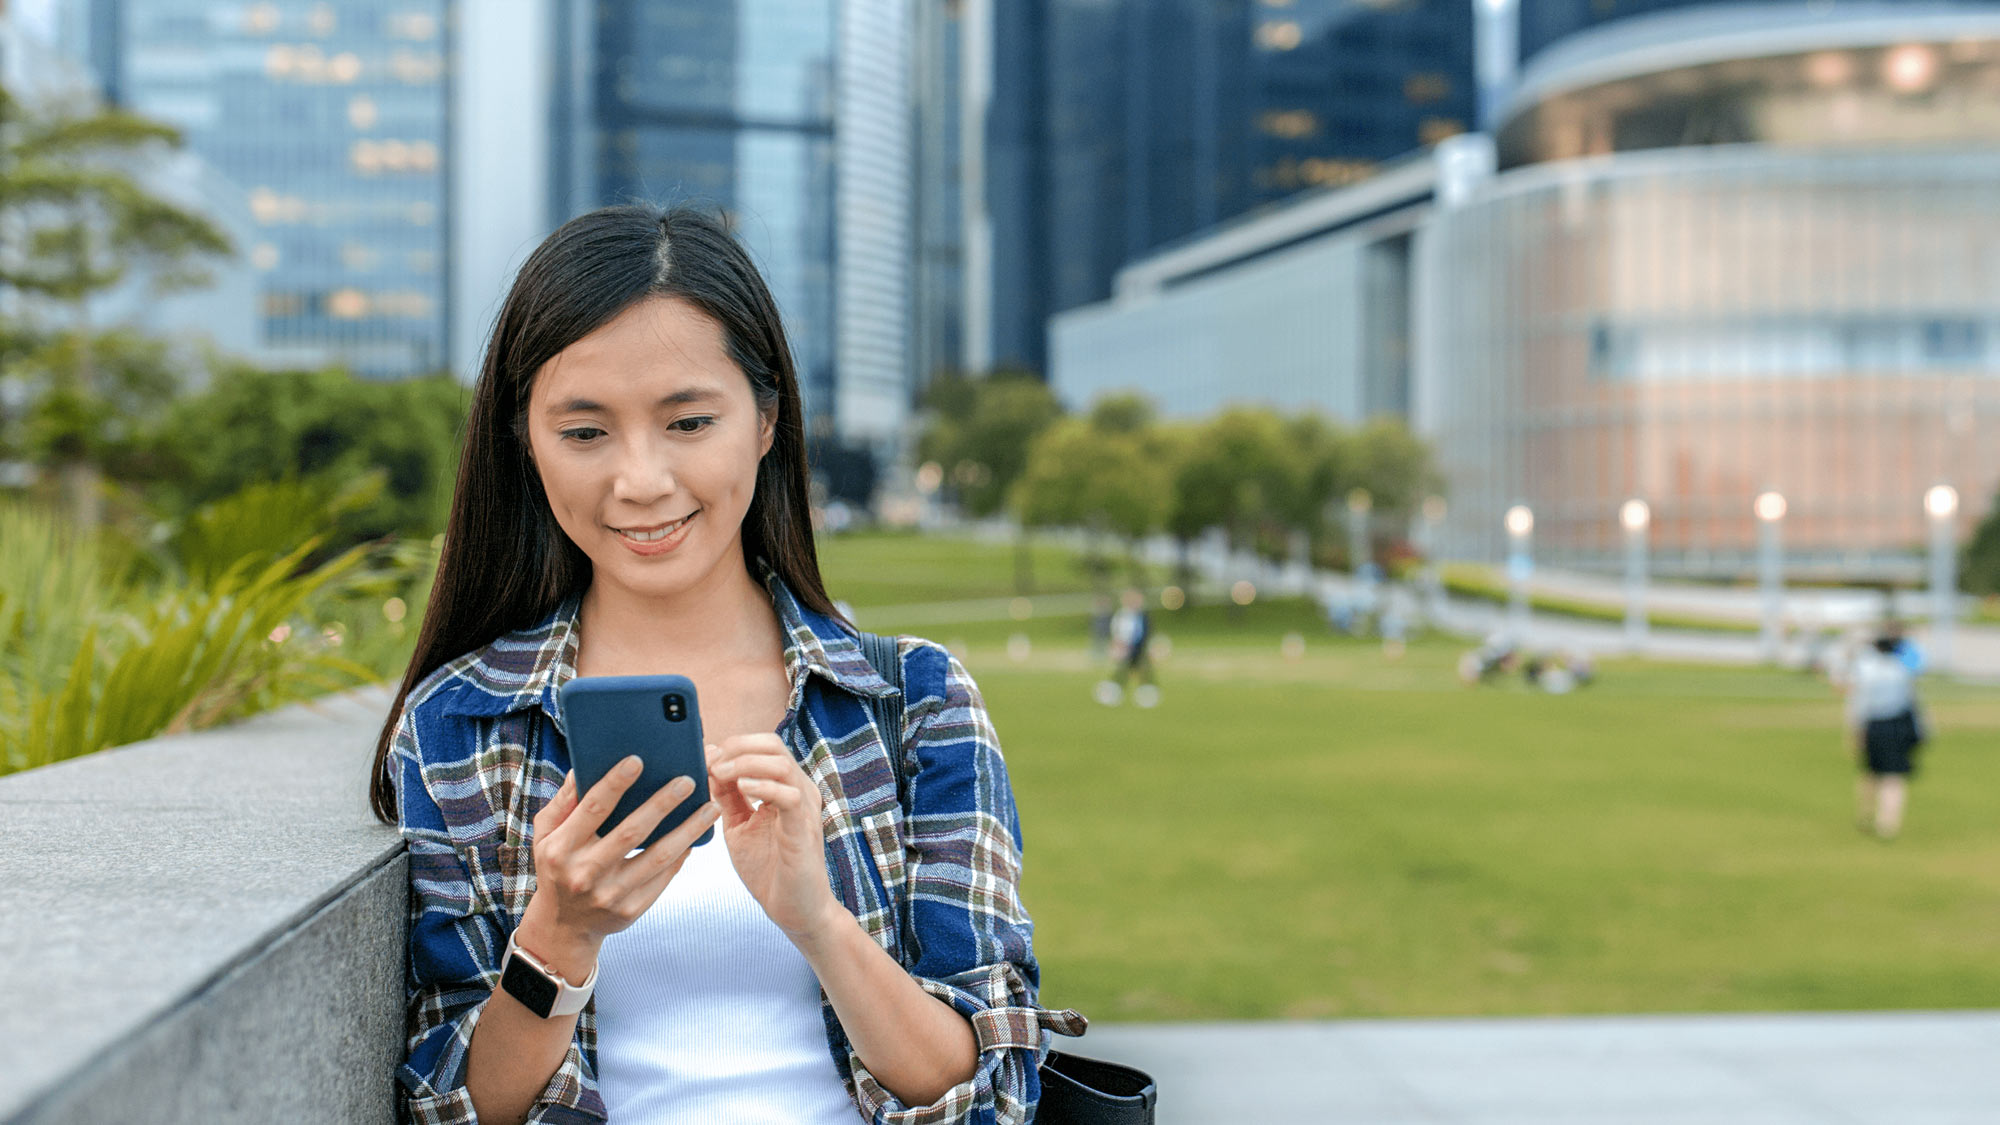 Young woman using her mobile phone outdoors